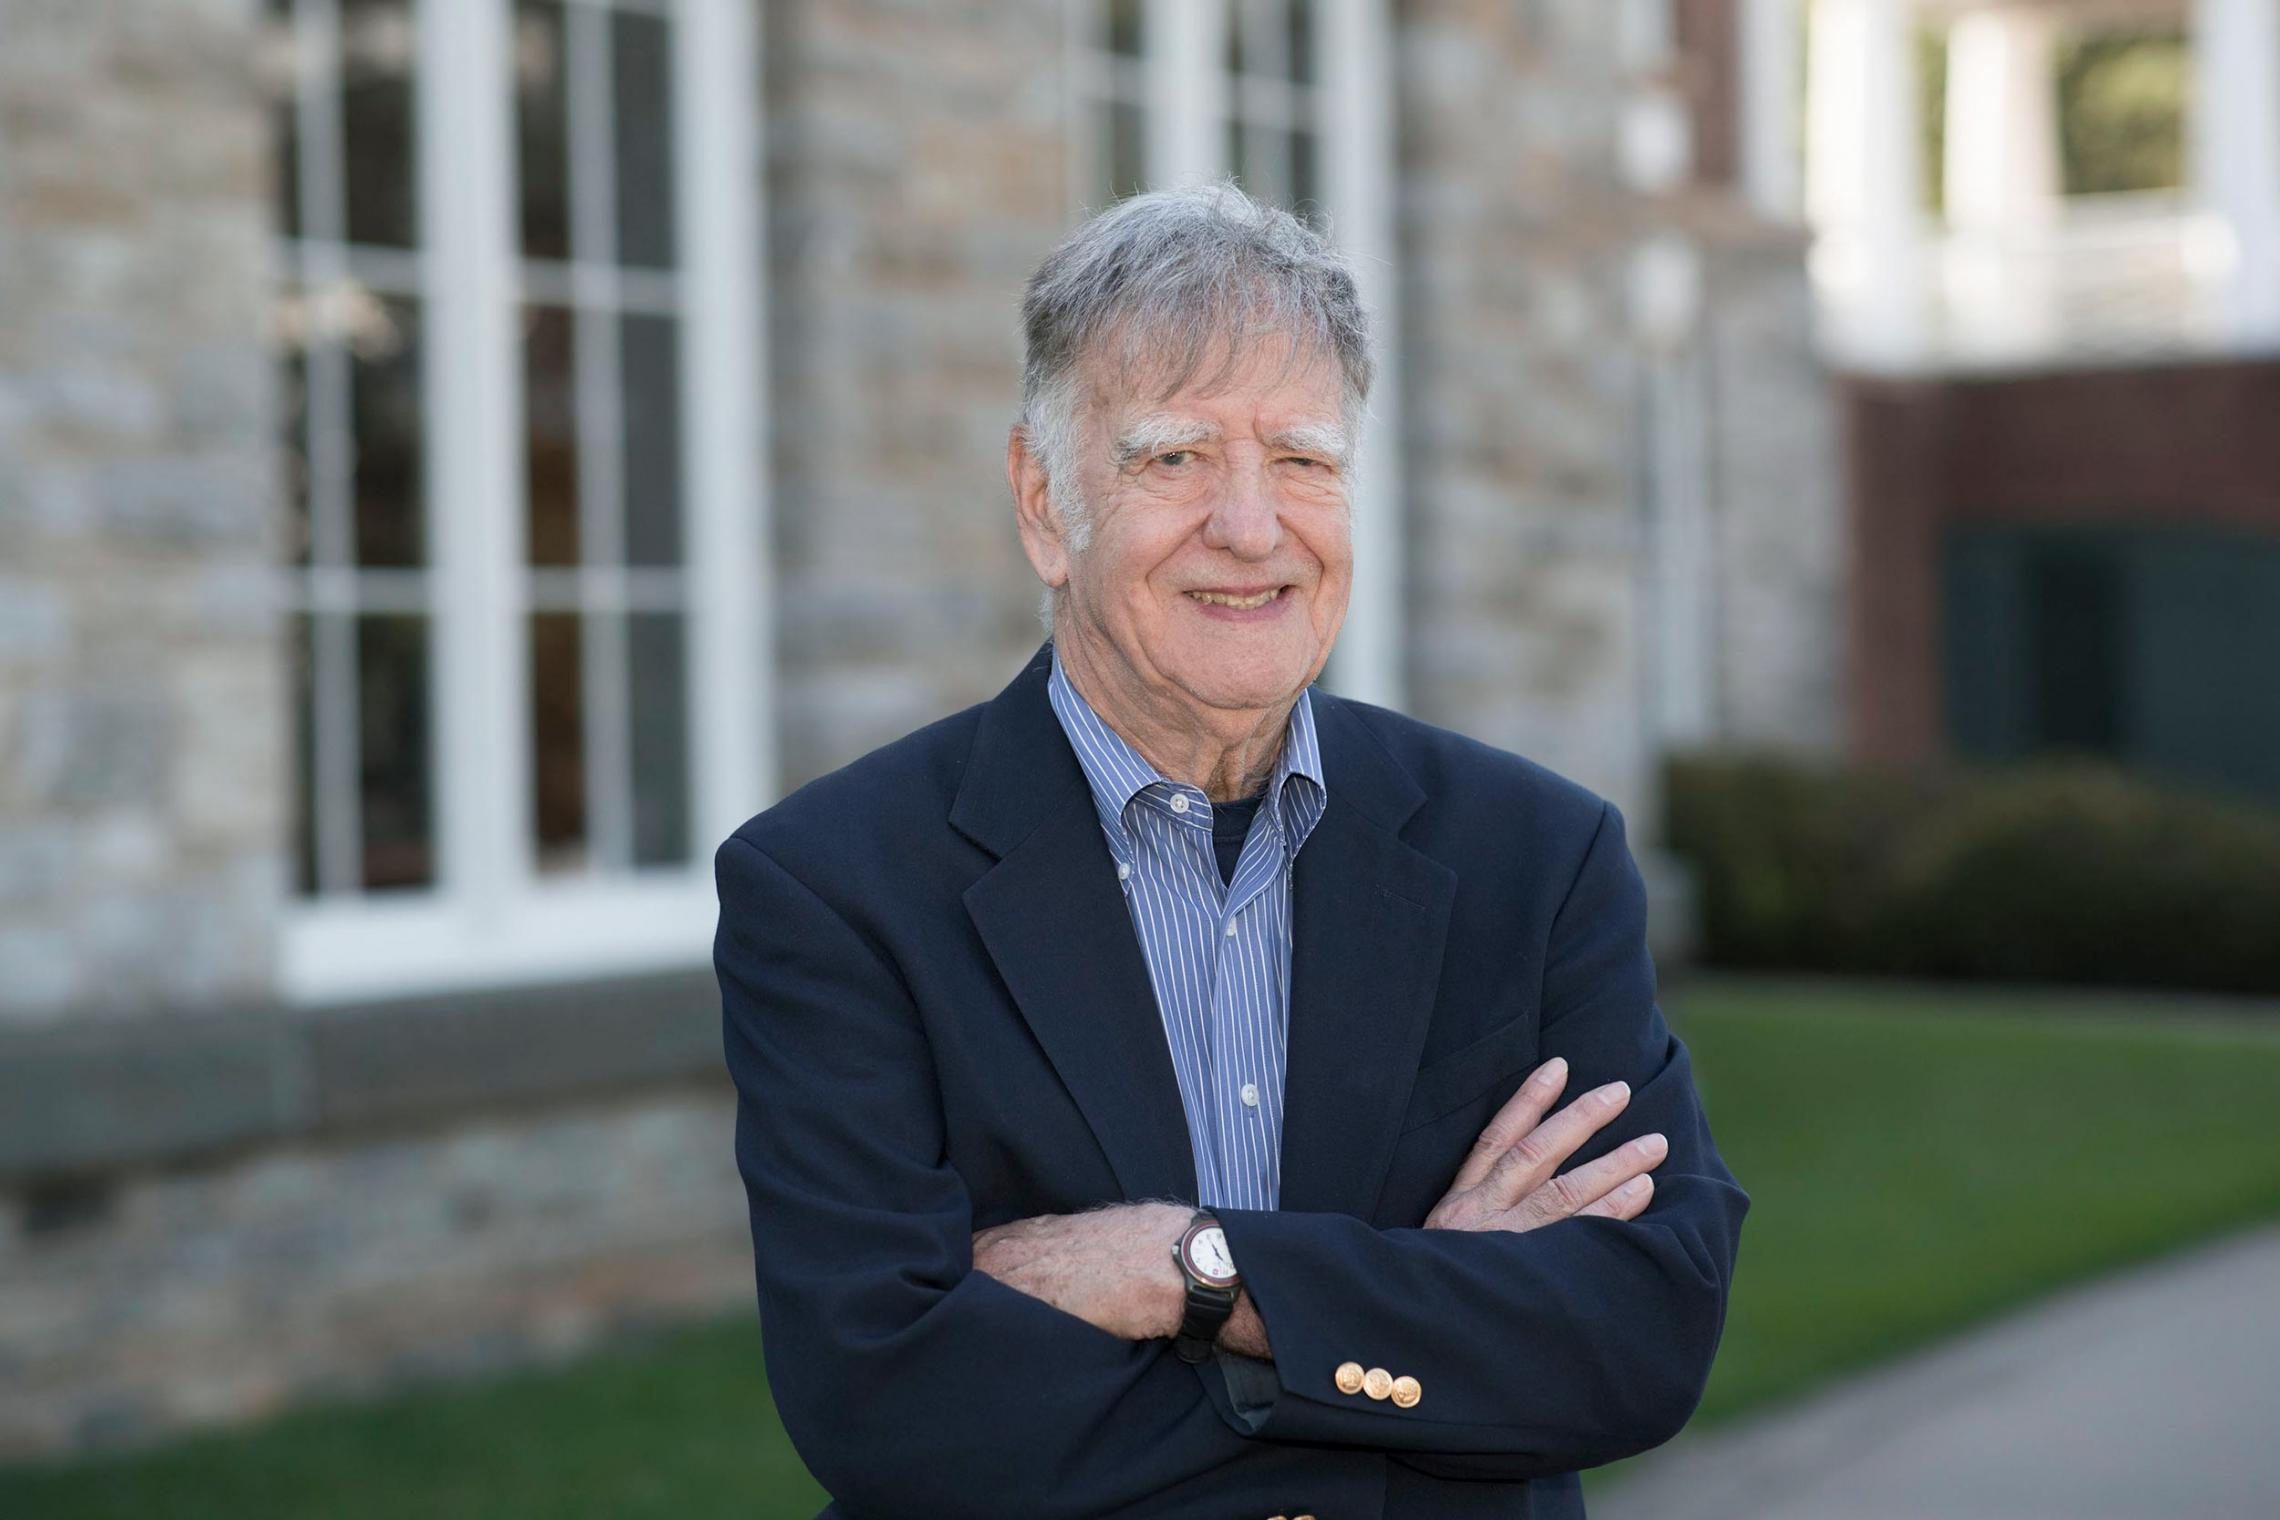 Ray Scheppach navigated through three recessions while with the National Governors Association. Now on the UVA faculty, he has a few tips to share with those who follow in his footsteps.